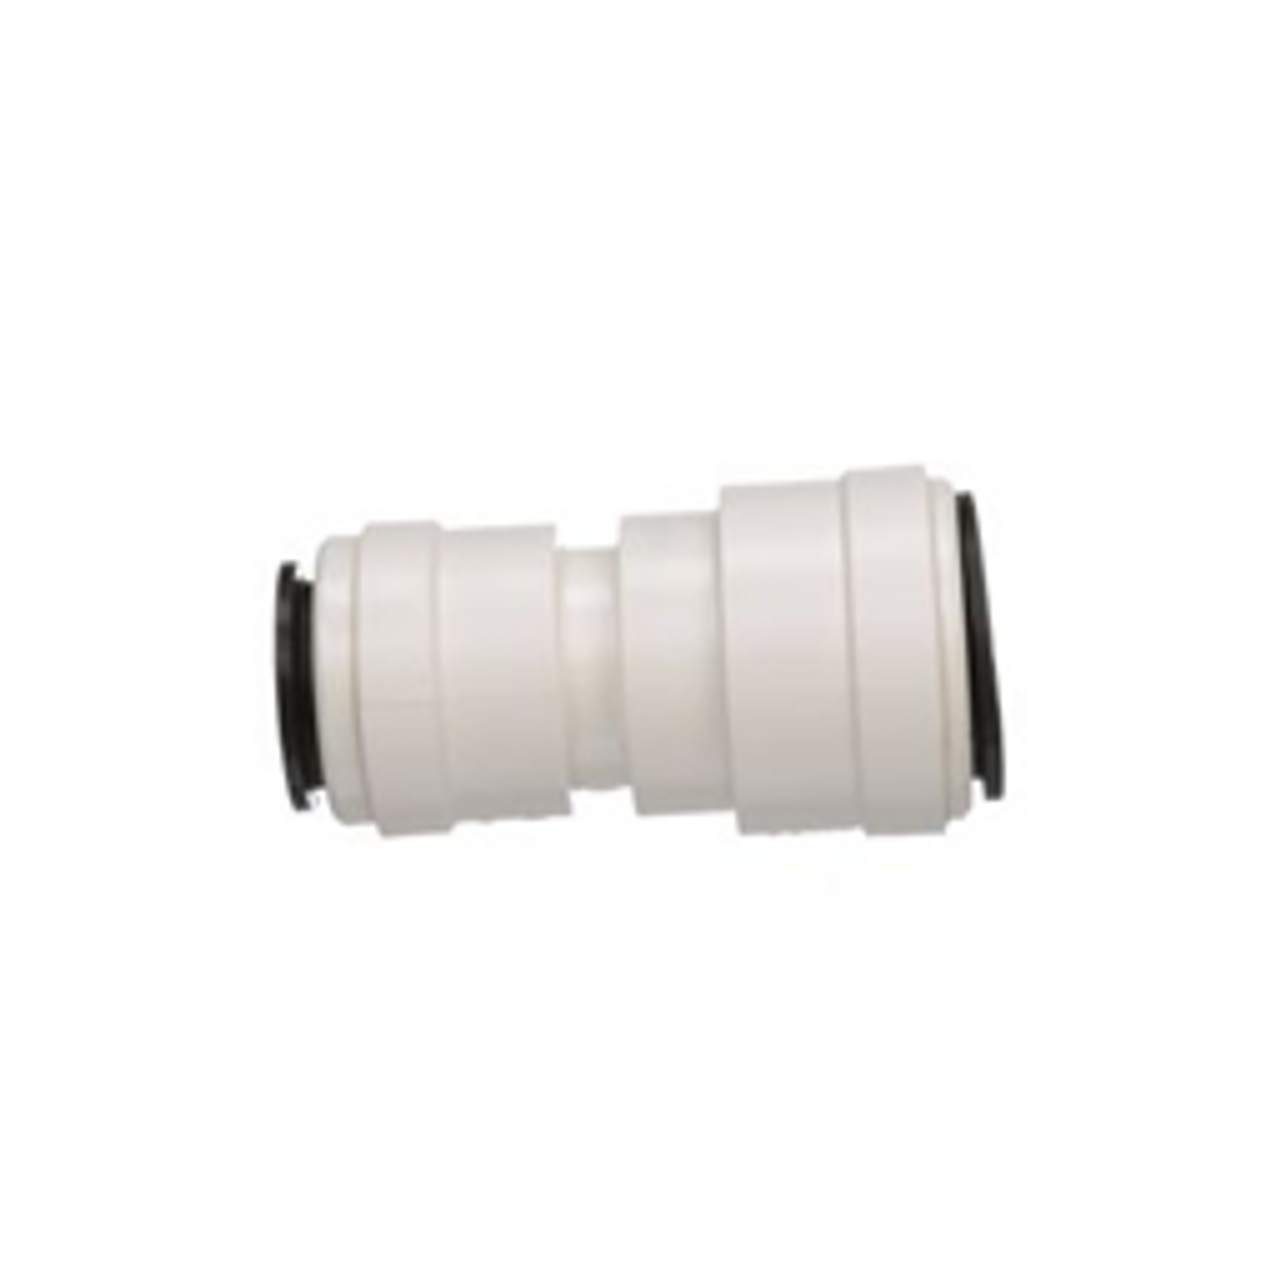 """1"""" CTS x ¾"""" CTS Reducing Coupling 3515R-1814"""